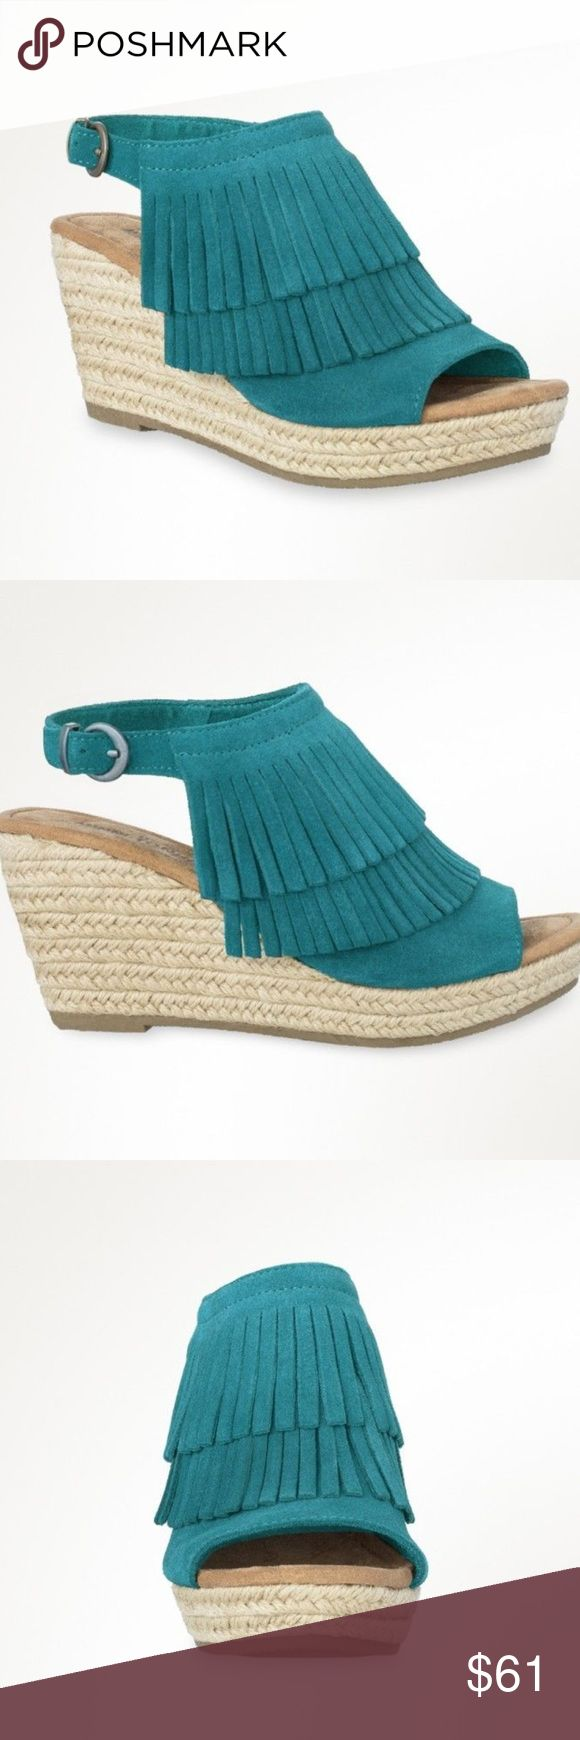 Minnetonka Ashley Women's Turquoise Wedge Sandal Ladies 3 ¼-inch jute wrapped wedges topped with two layers of soft suede fringe and buckled ankle straps. These women's sandals pair well with everything from cut-off denim shorts to flowy sundresses. Minnetonka Shoes Sandals